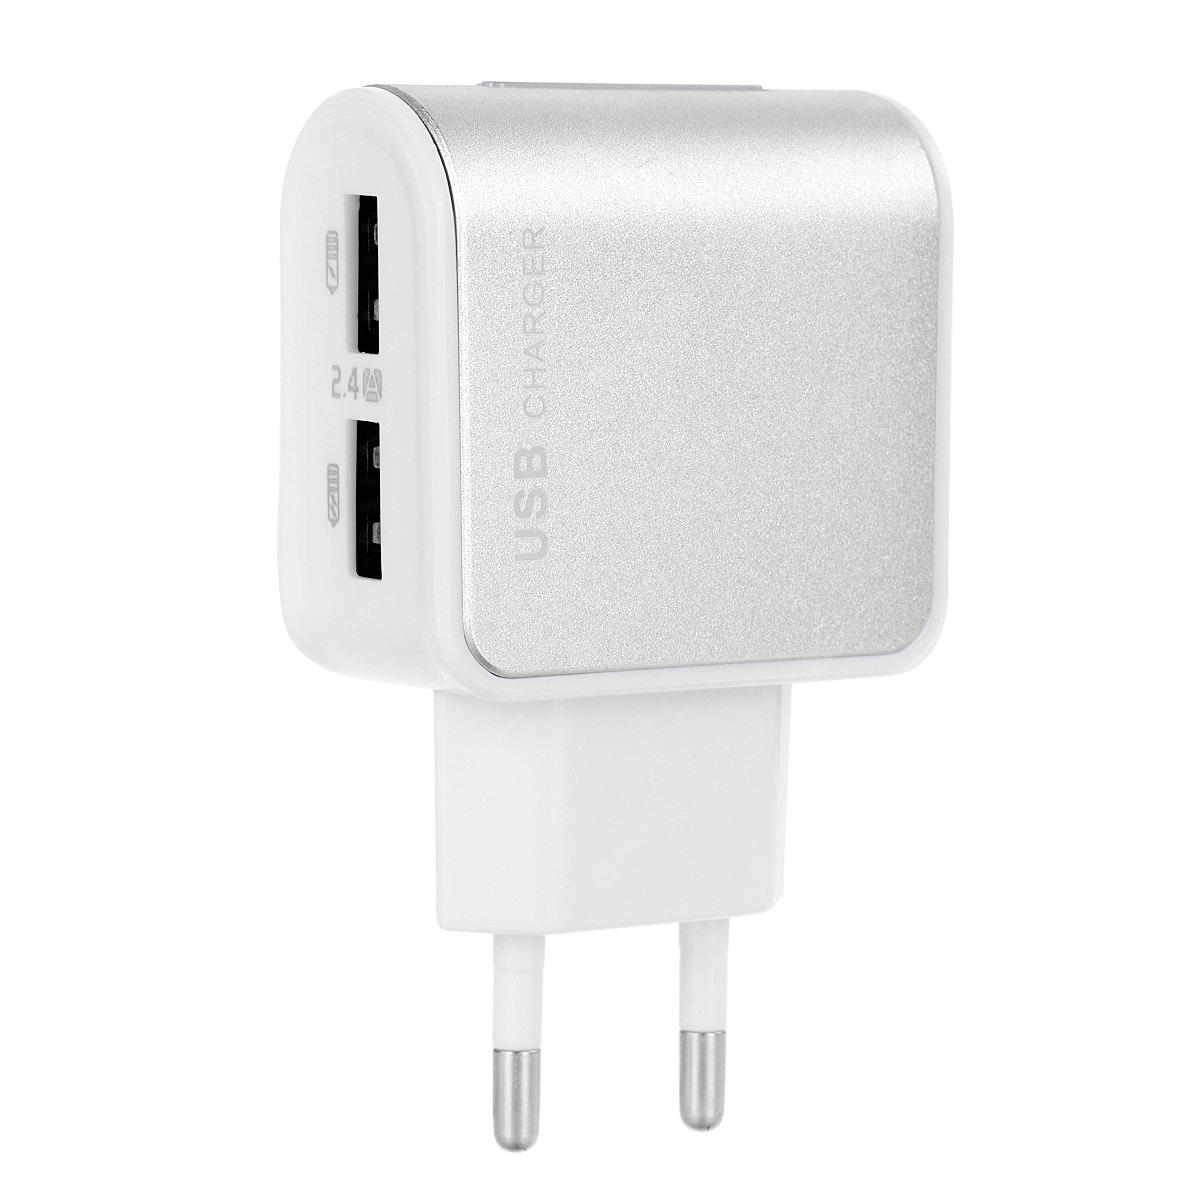 Jtron 5V 2.4A EU Plug Power Adapter Chargeur